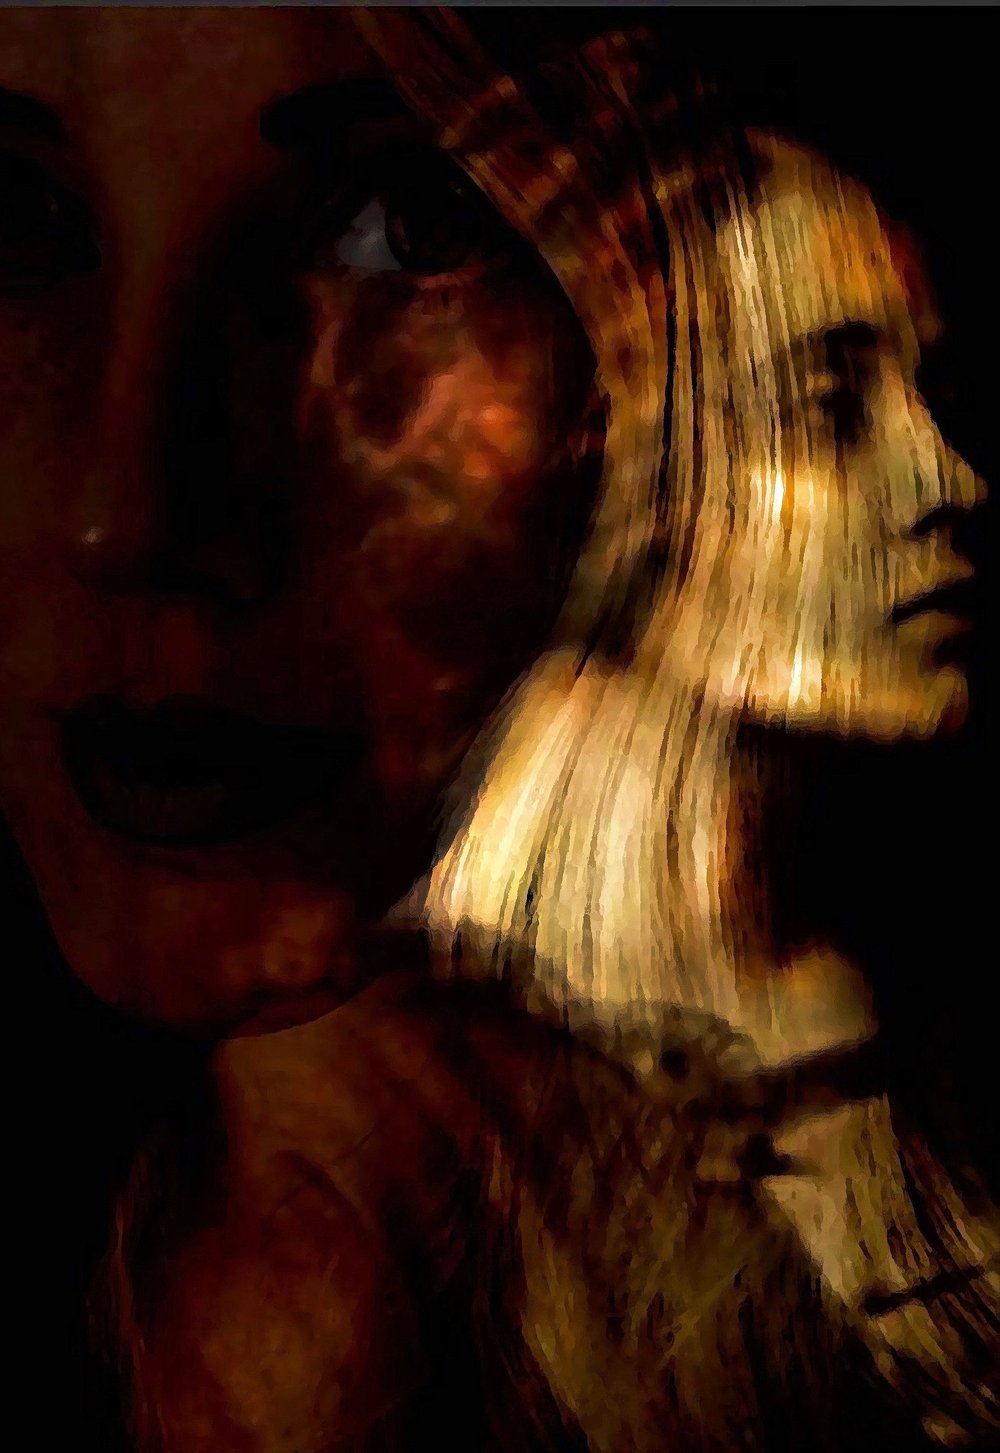 """Treva"" by Jacqlynn Hamilton, 8.5x11in, digitally manipulated photographic image (2017) $125 